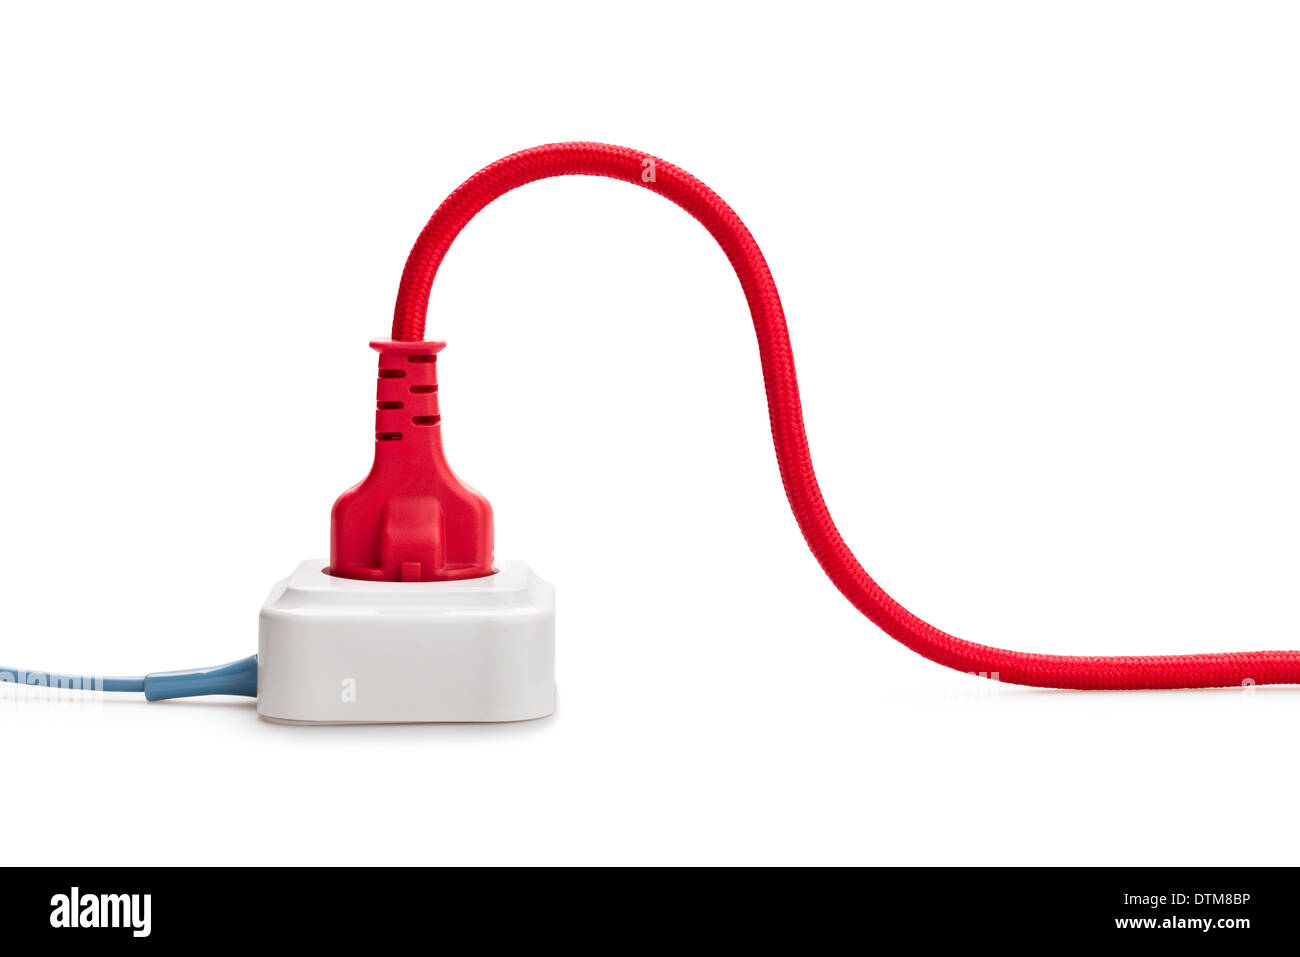 plugged in connection outlet isolated - Stock Image